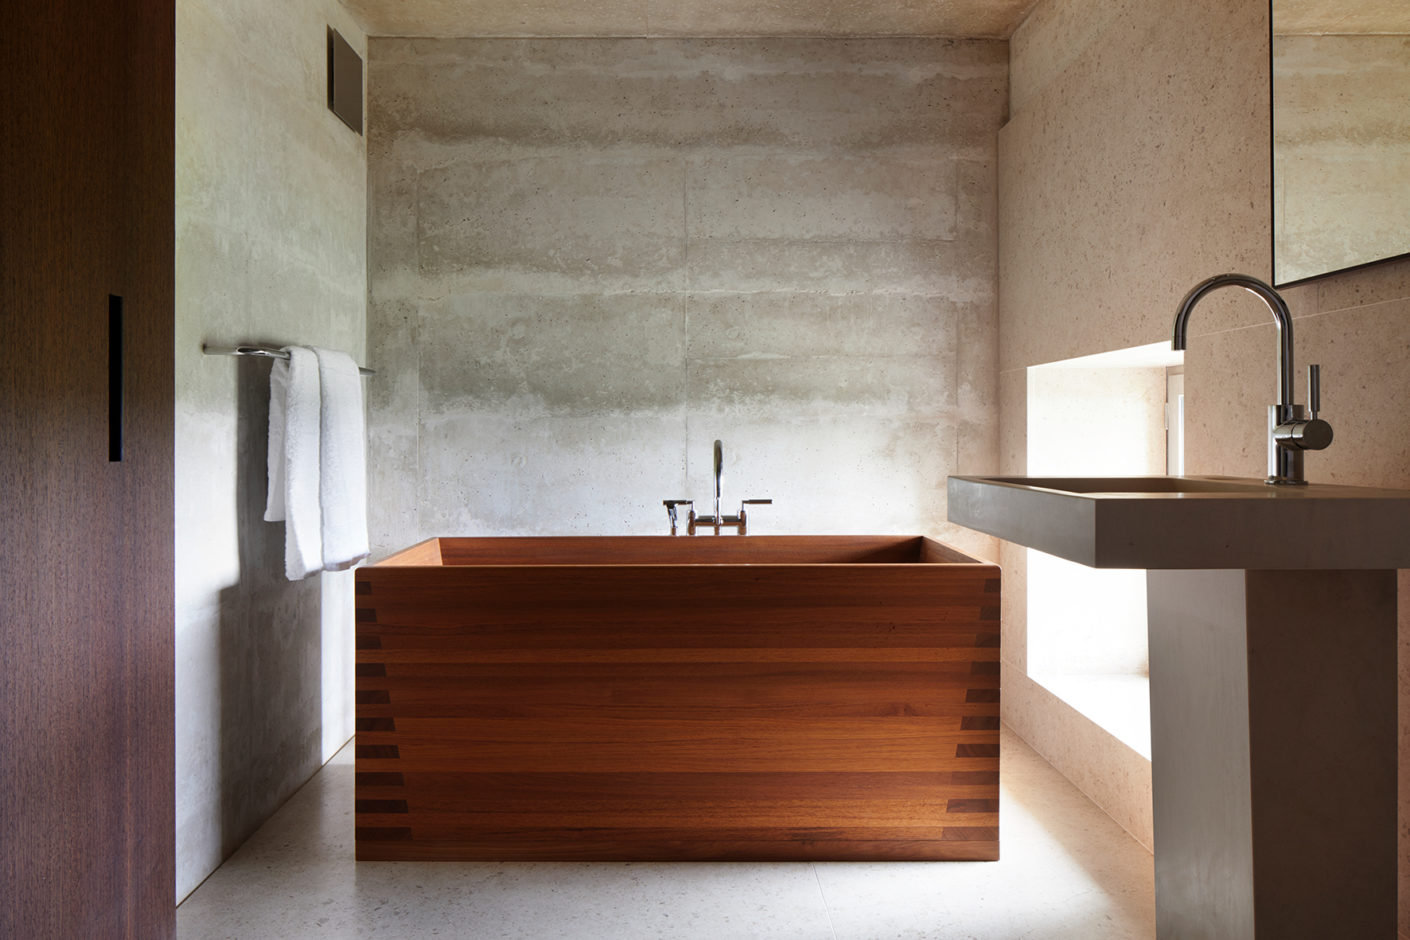 A bathroom with a Furo wooden tub.